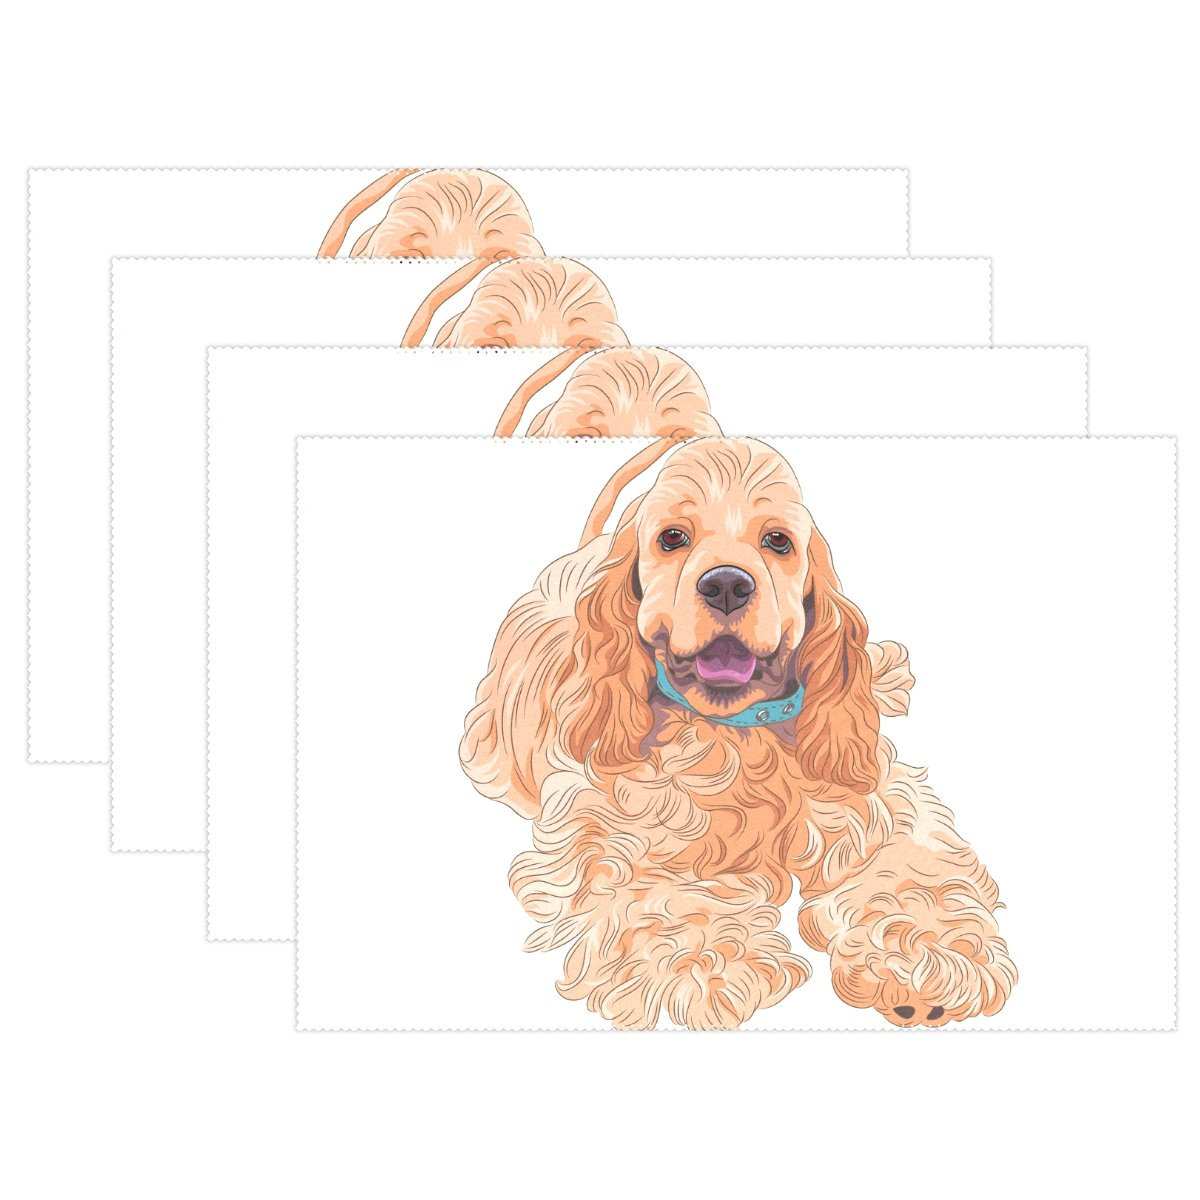 4pcsダックスフント犬バタフライプレースマット – 12 x 18in – Washable Heat Crease Resistant Printed Place Mat forキッチンディナーテーブルby Top Carpenter 4pcs Houseusemat-1215-F10 4pcs パターン10 B0789D2HZR